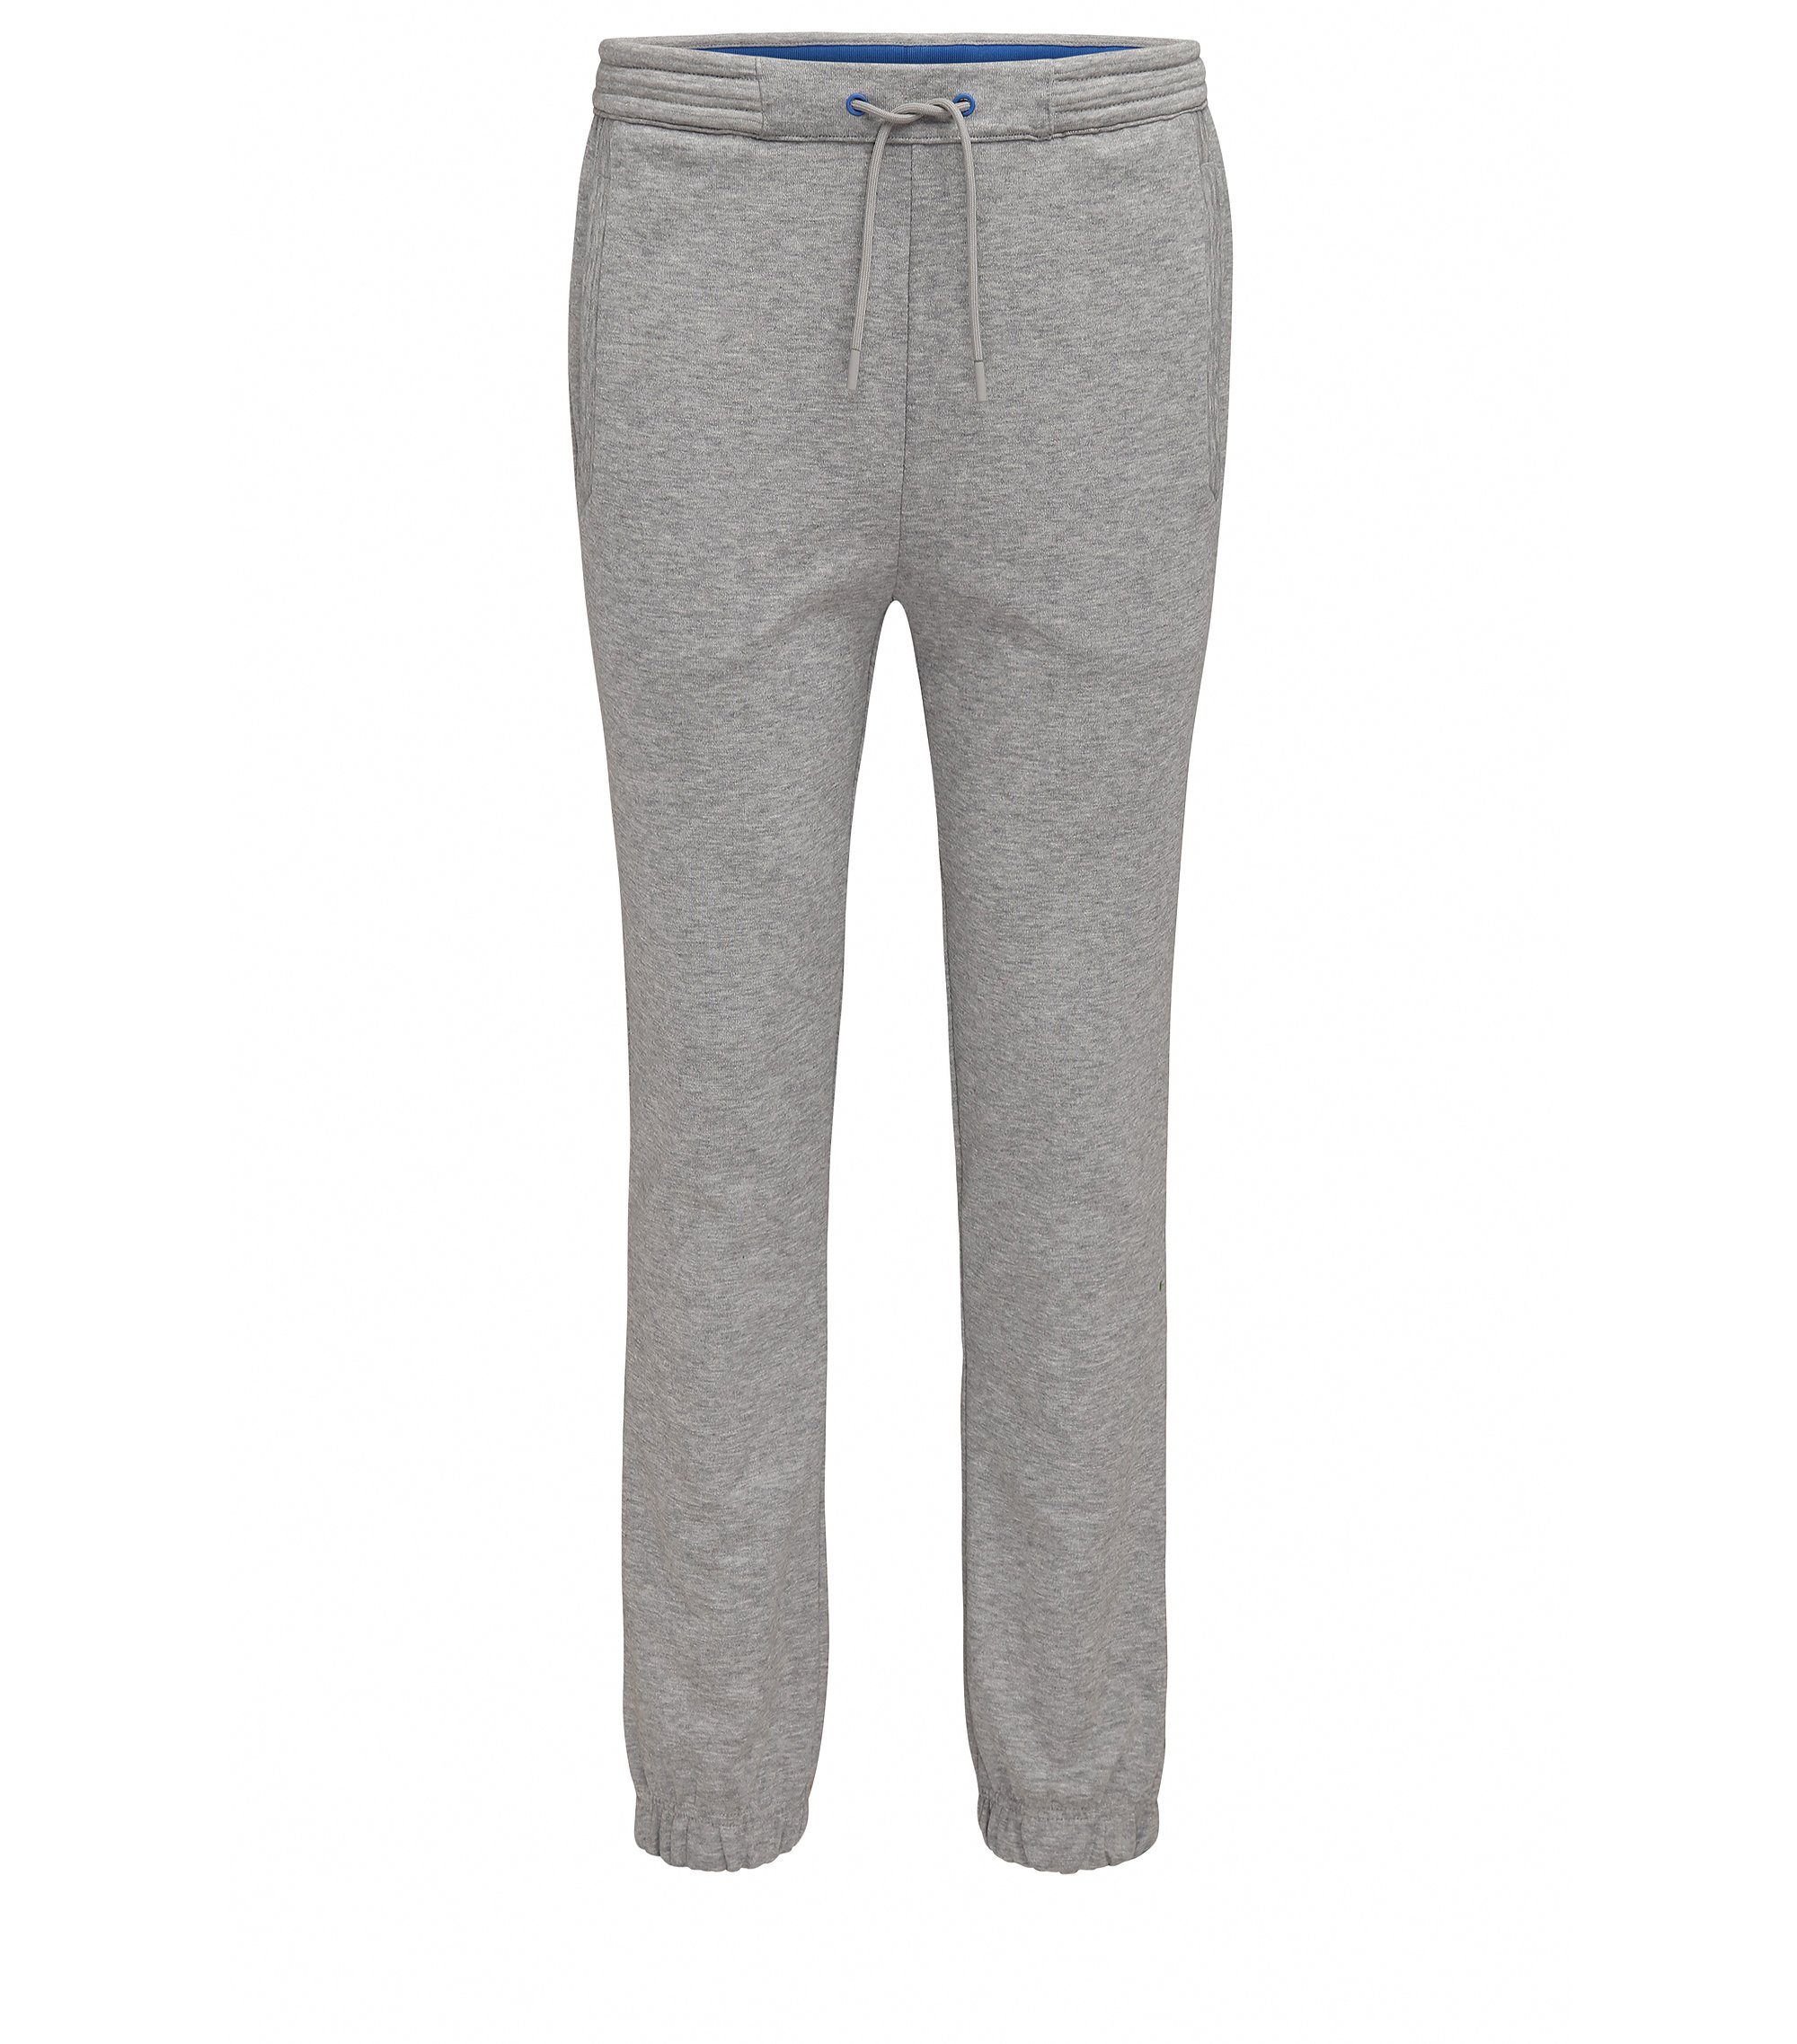 Pantalon de jogging Regular Fit en coton mélangé, Gris chiné